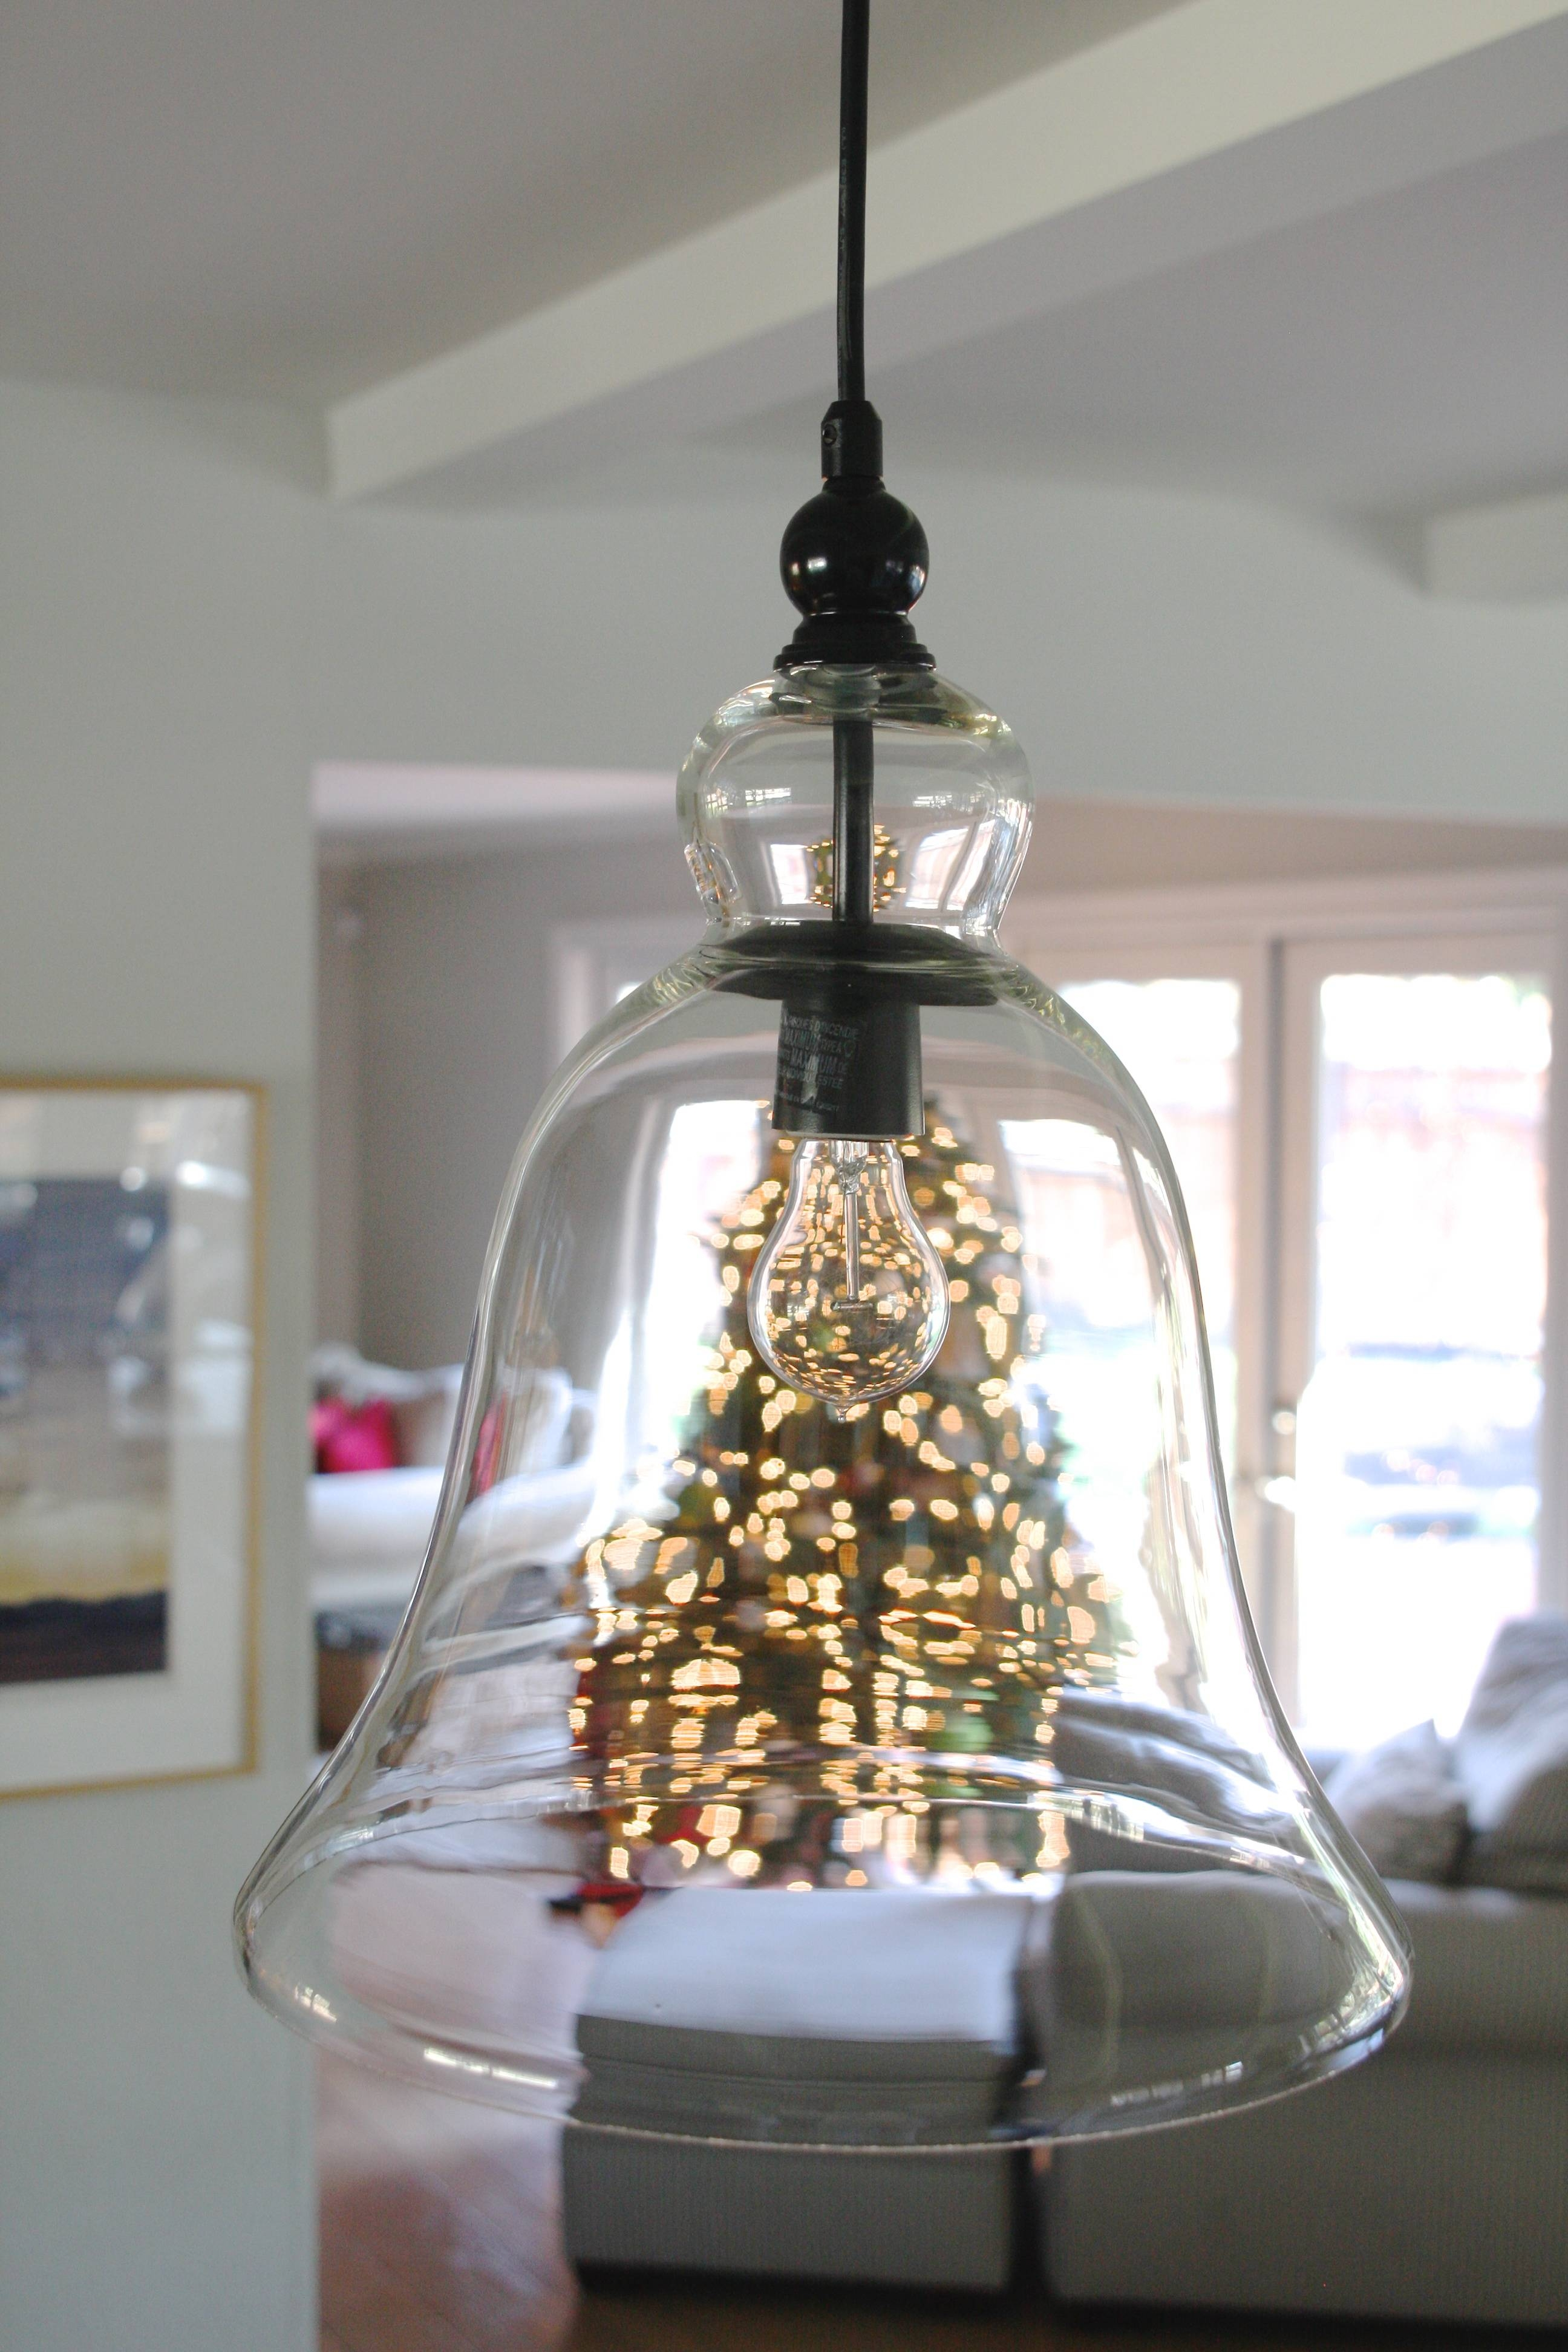 How To Clean Pottery Barn Rustic Pendant Lights – Simply Organized In Barn Pendant Lights (View 7 of 15)